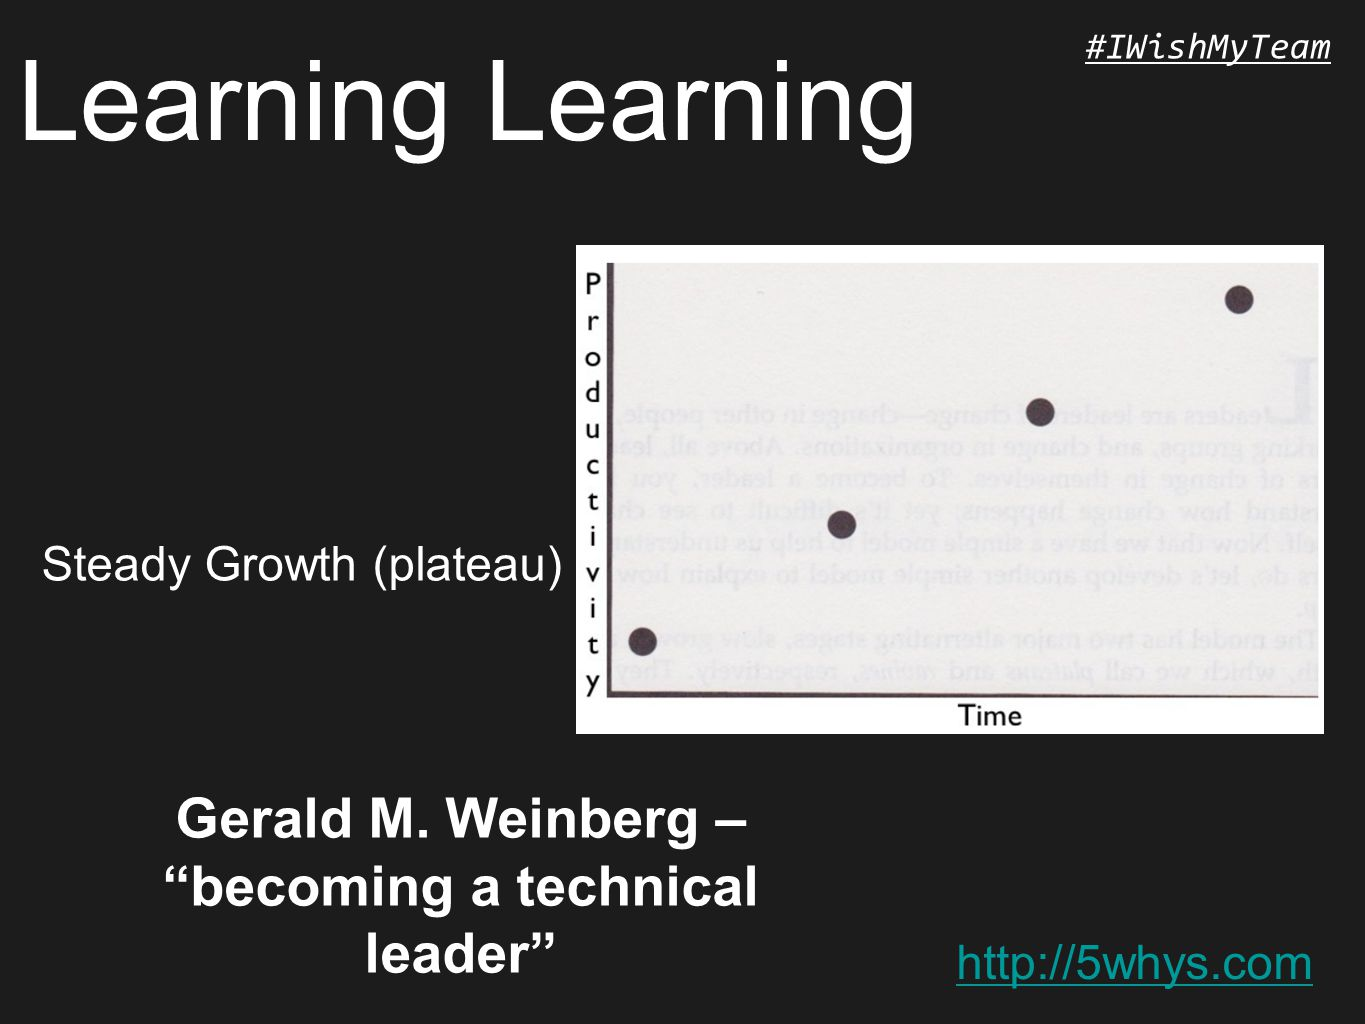 """http://5whys.com #IWishMyTeam Steady Growth (plateau) Learning Gerald M. Weinberg – """"becoming a technical leader"""""""